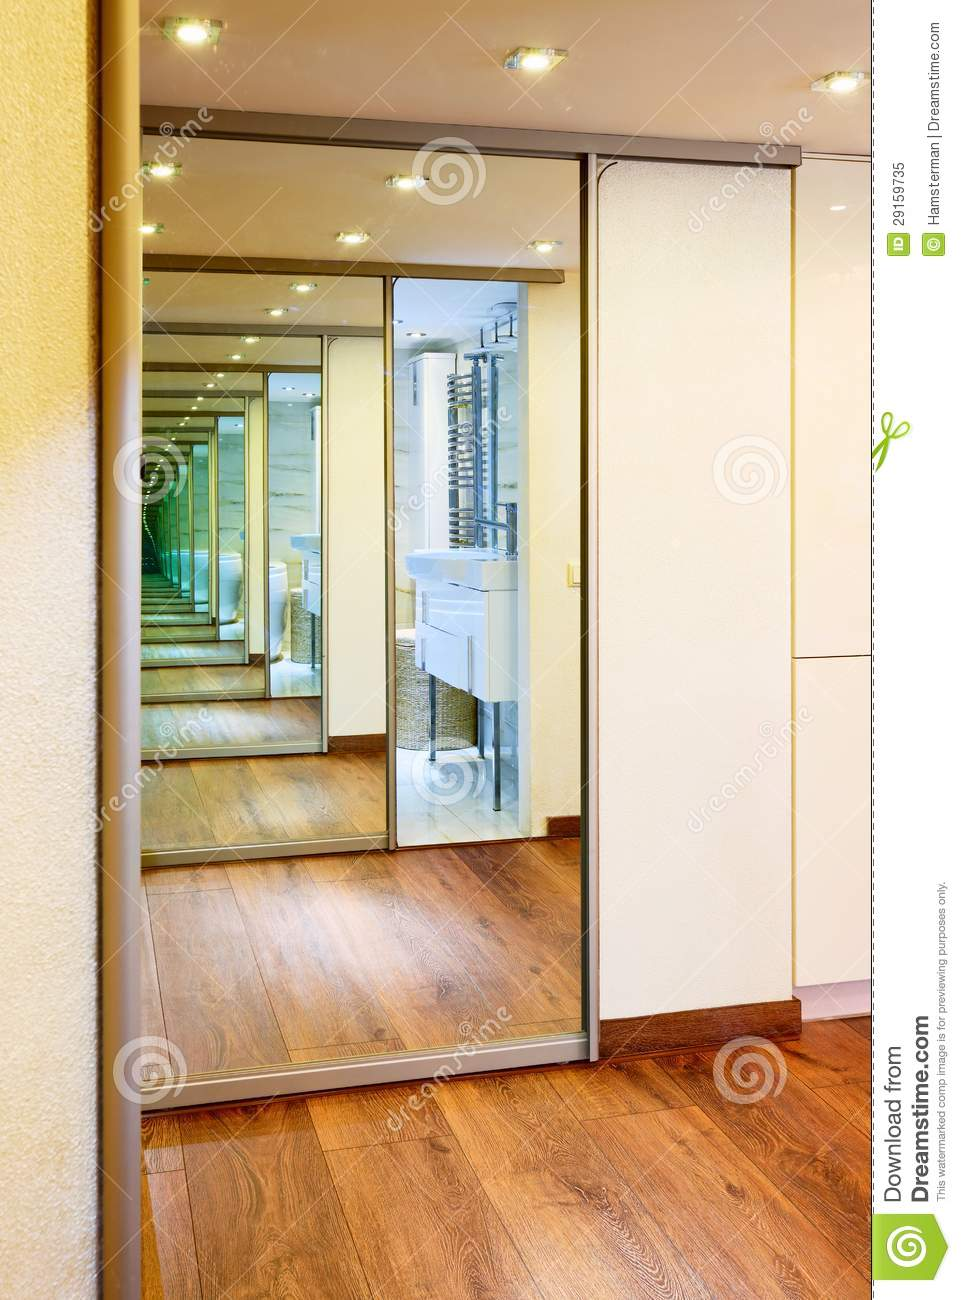 Sliding Door Mirror Wardrobe In Modern Hall Interior Stock